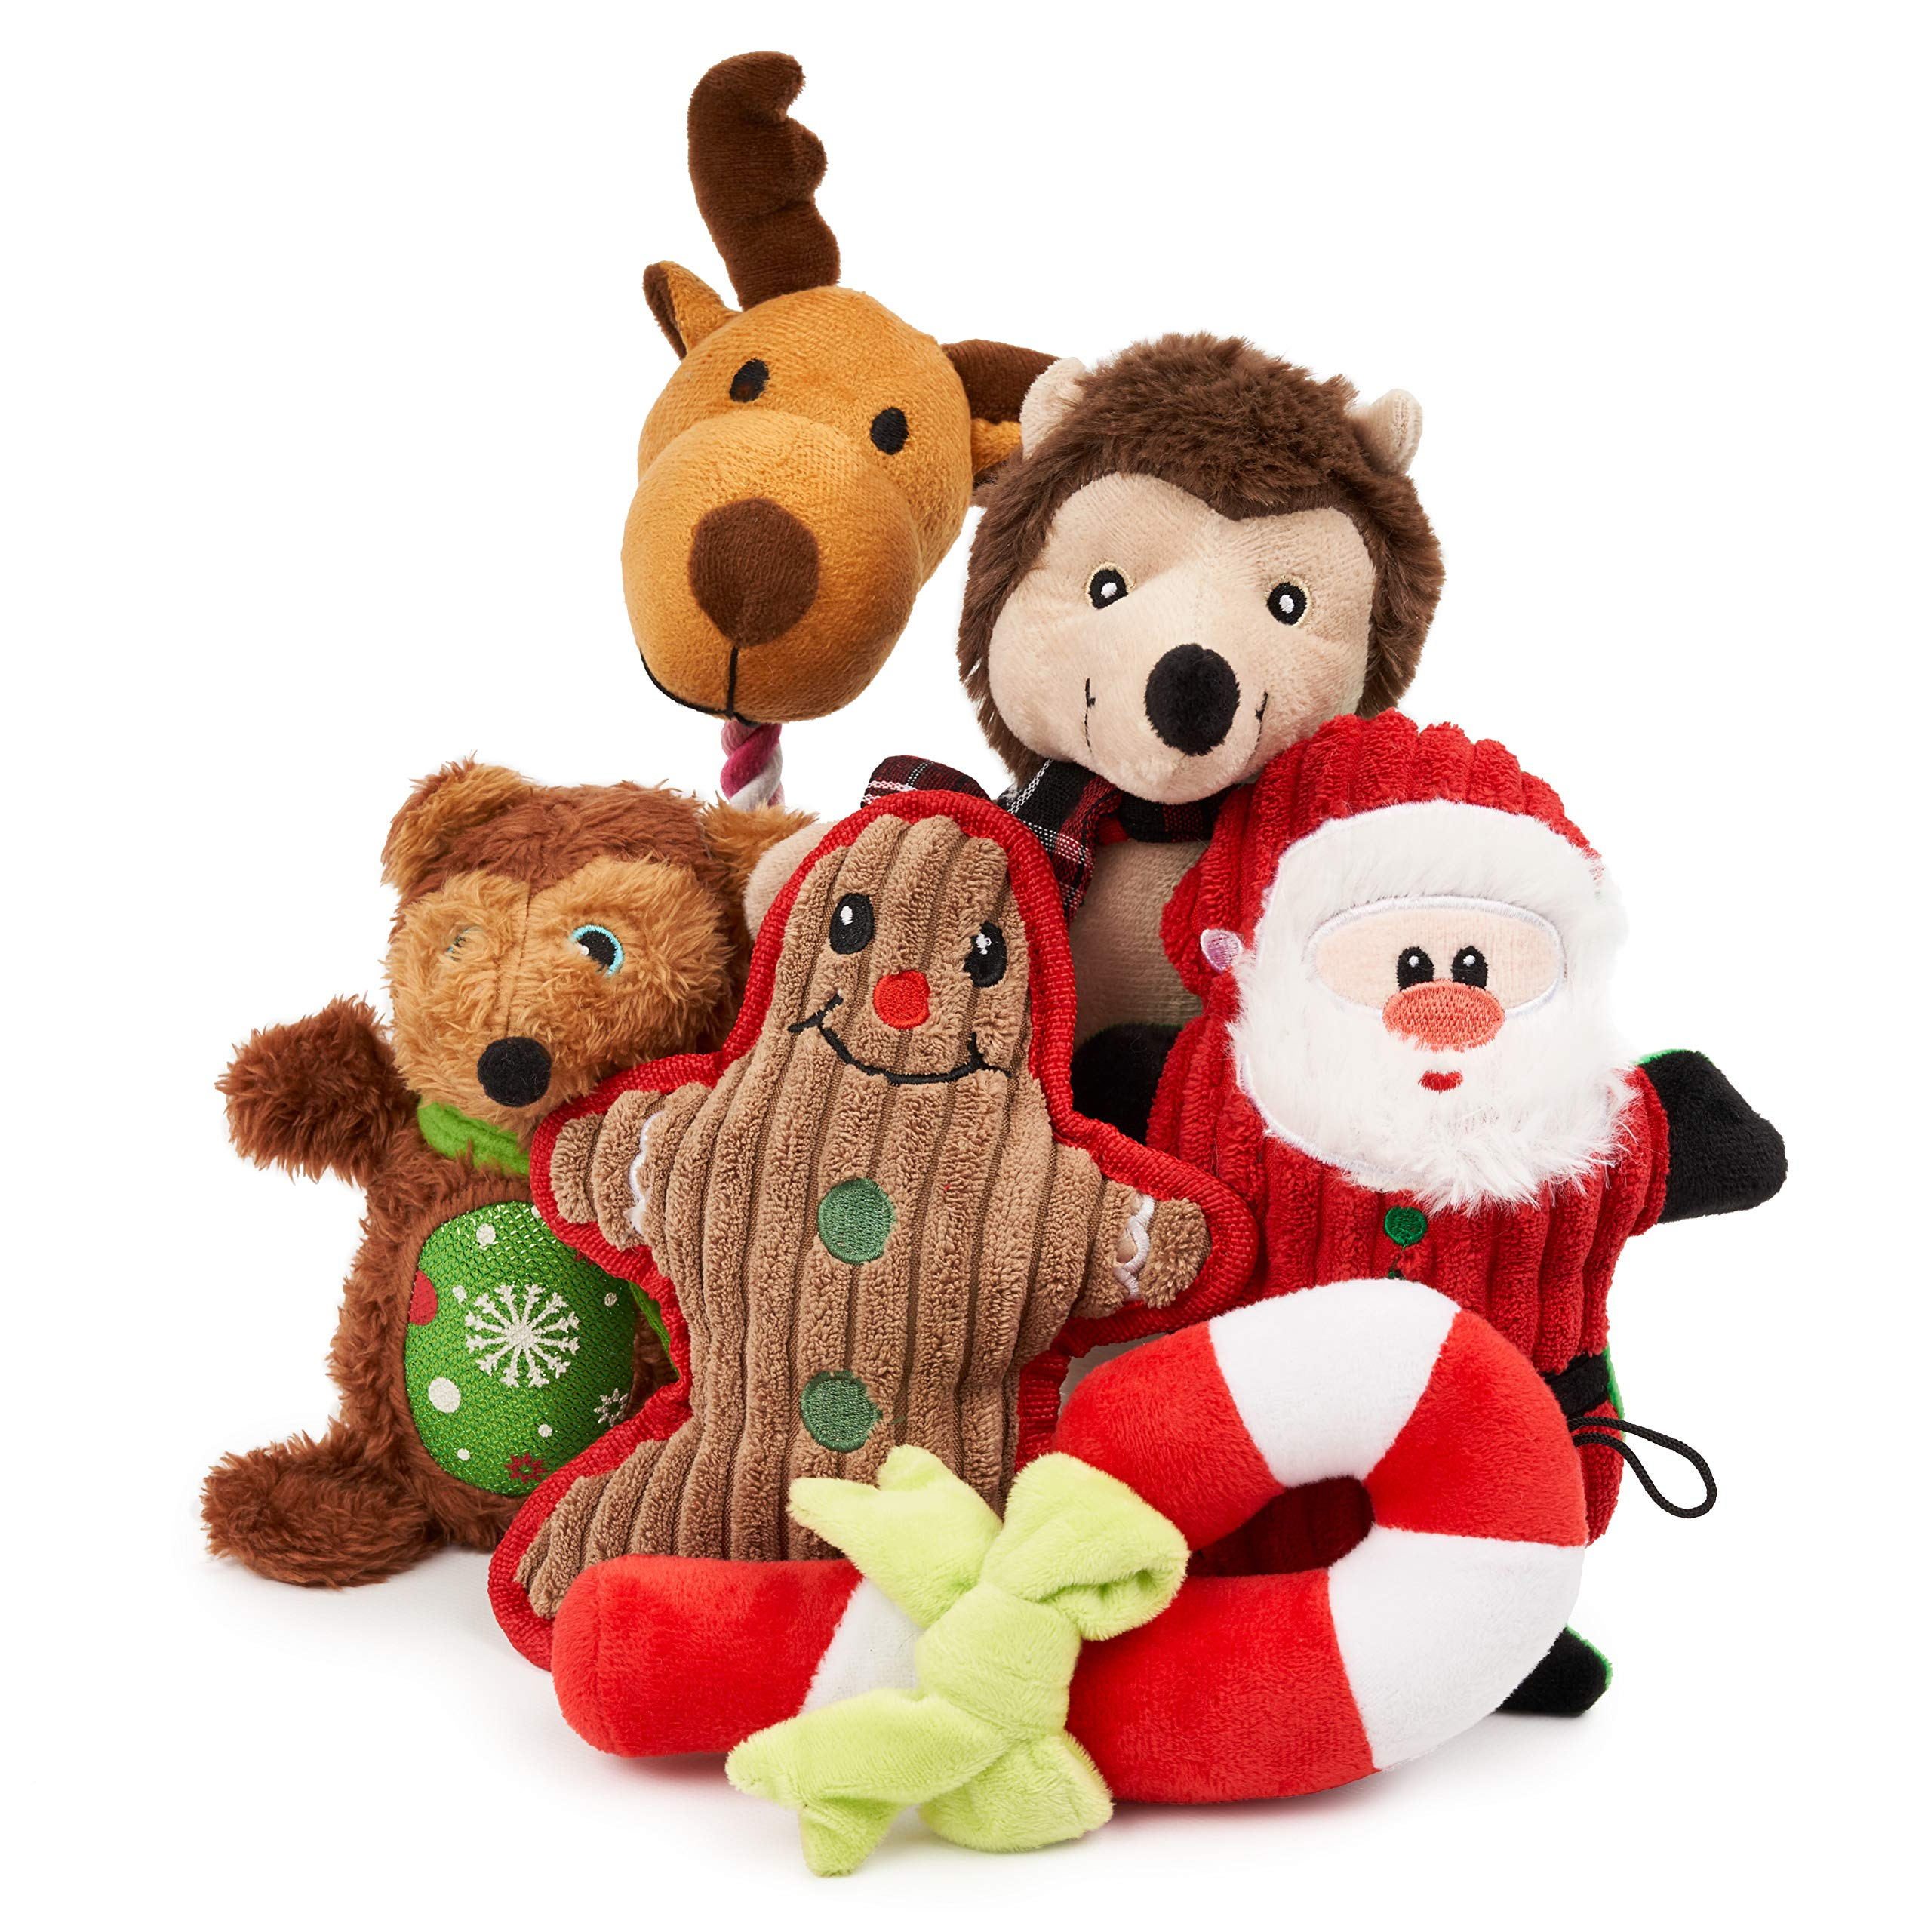 THE TWIDDLERS 6 Christmas Plush Dog Toys| Festive, Squeaky & Soft| Interactive Toys for Puppy, Small & Medium Dogs| Durable, Washable, Non-Toxic| Xmas Gift for Pets.